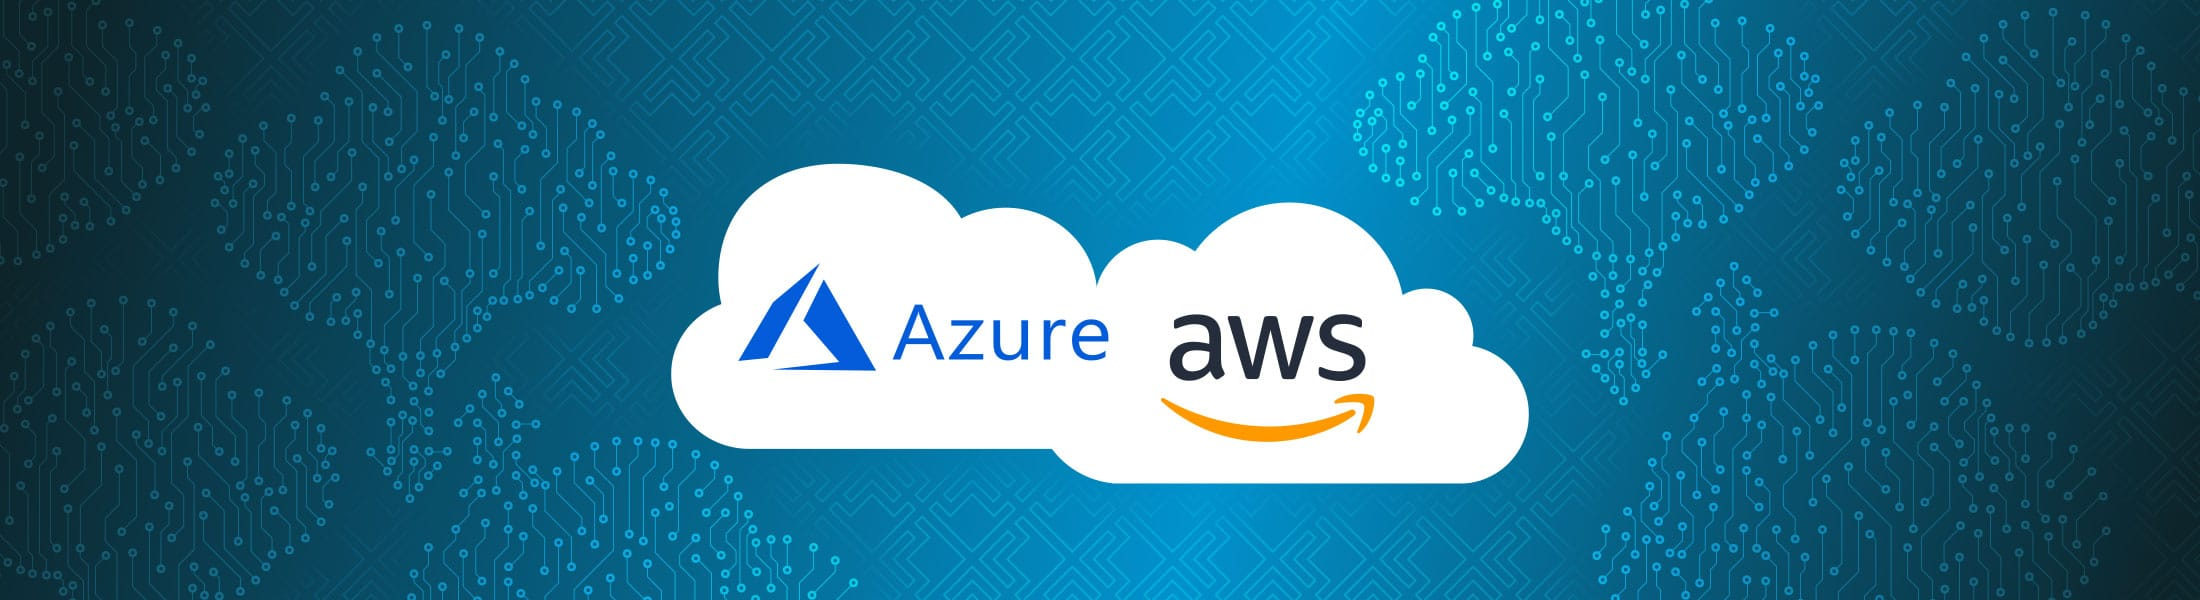 Azure Vs AWS: The Big Leaguers of Cloud Computing